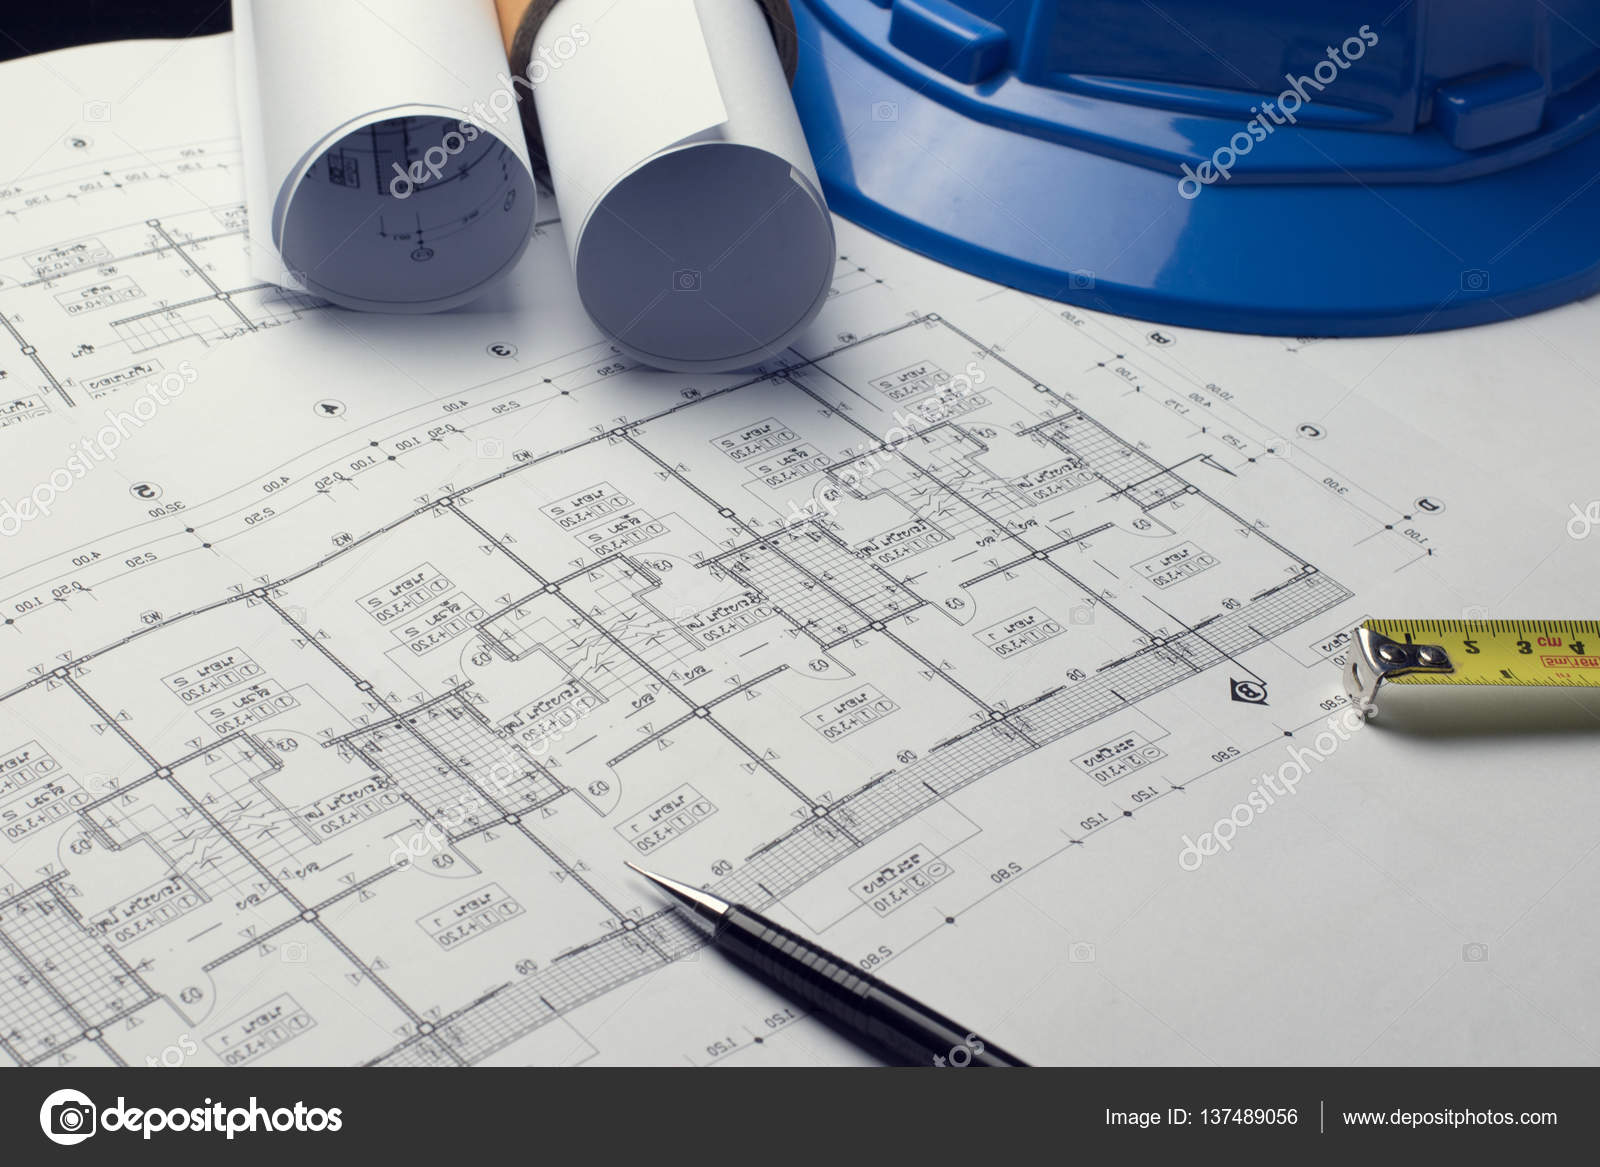 Architectural plans project drawing with blueprints rolls stock architectural plans project drawing with blueprints rolls photo by dfrsce malvernweather Images